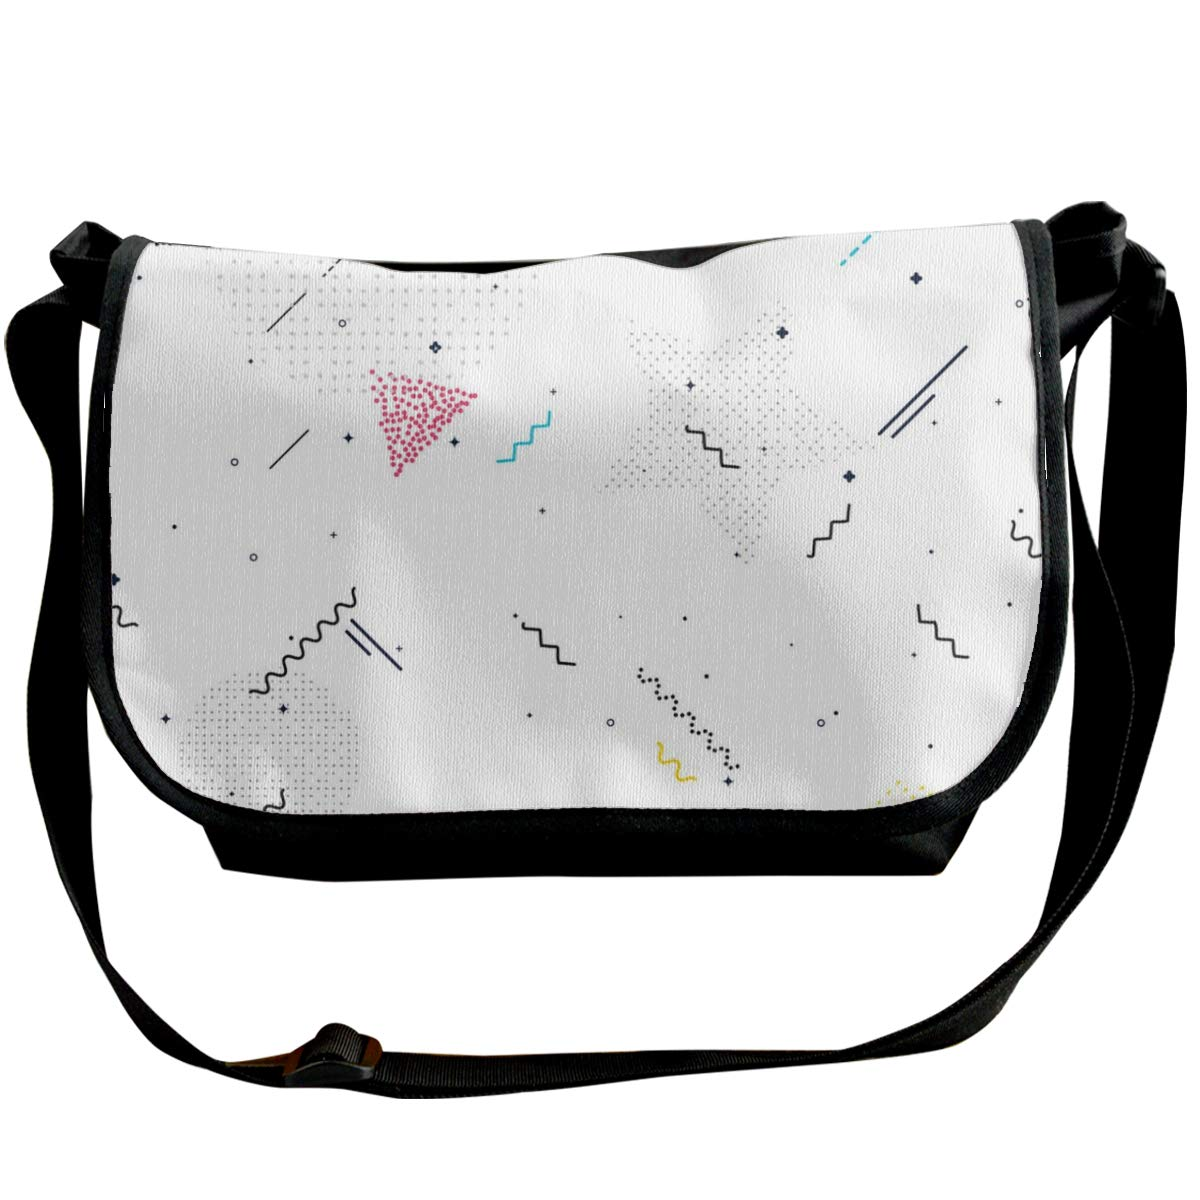 Sourde Graphics And Wavy Lines Composed Of Wave Points Messenger Bag Handbag Invisible Wallet Female Shoulder Bag